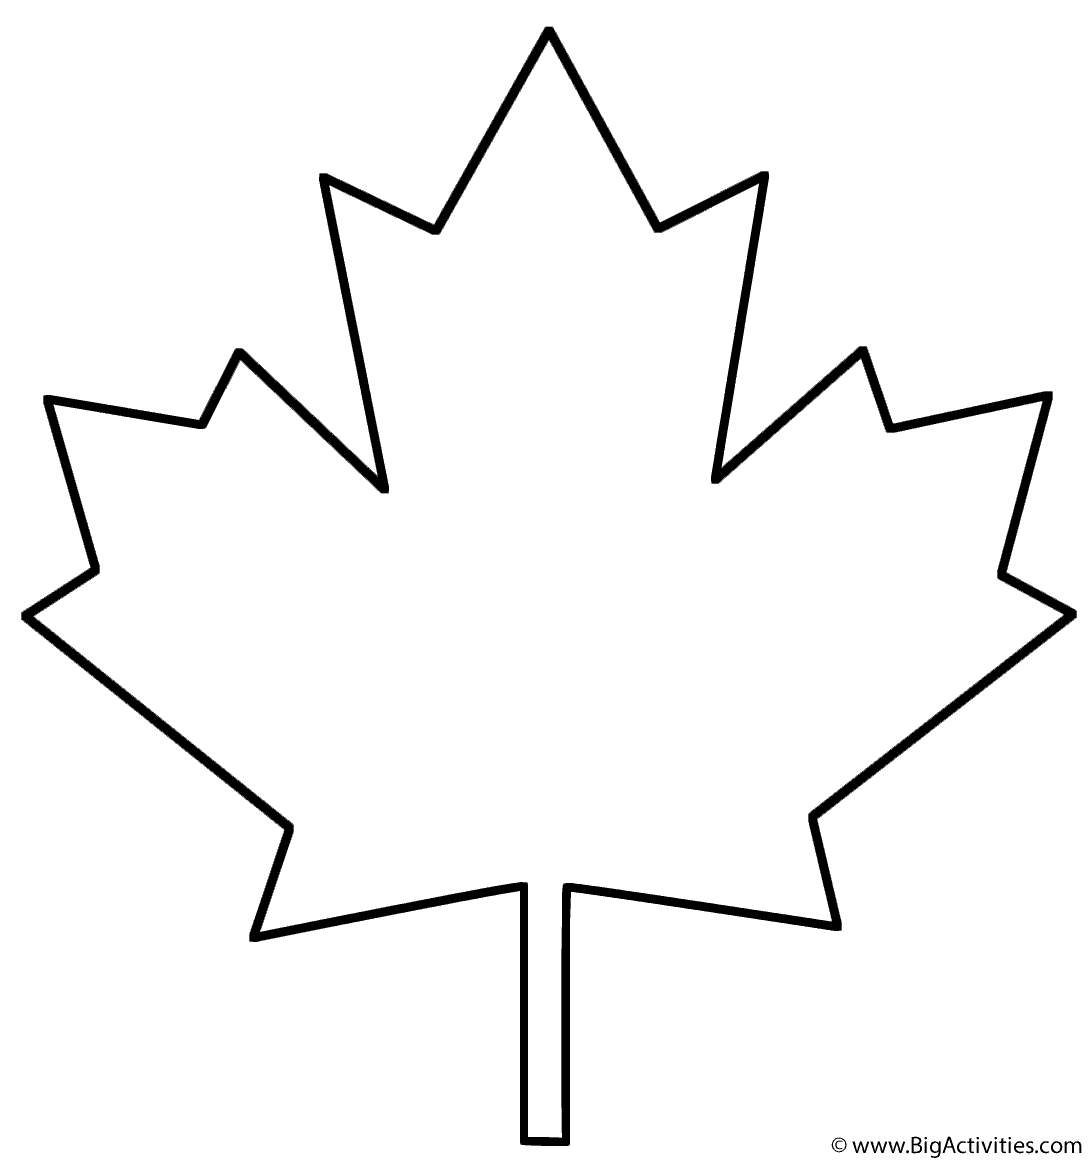 Maple Leaf - Coloring Page (Plants)